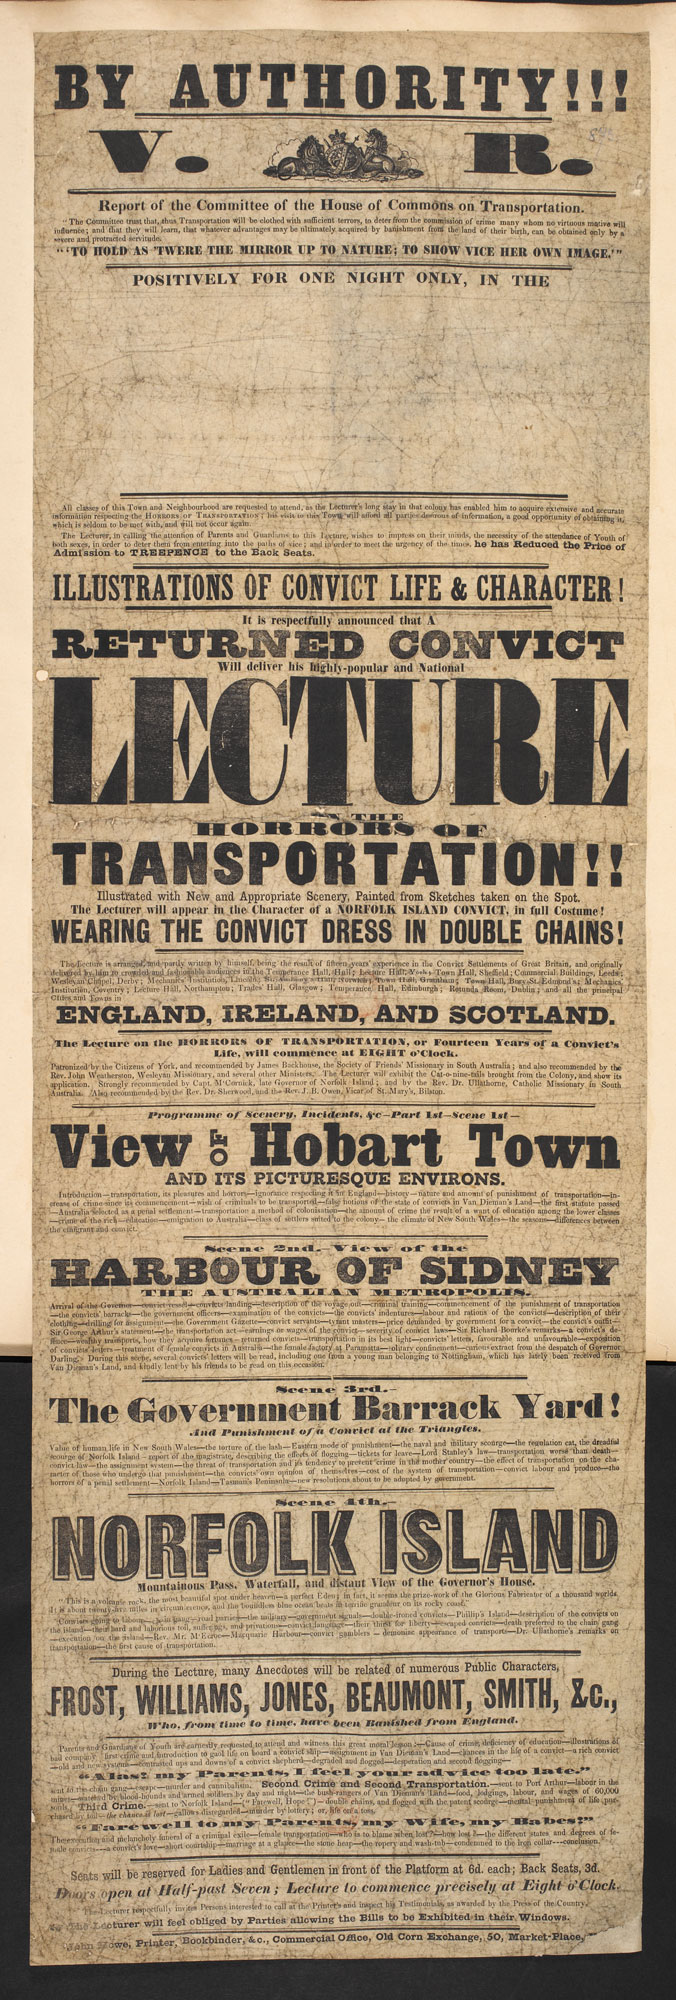 Broadside: A lecture on the horrors of transportation [page: single sheet]